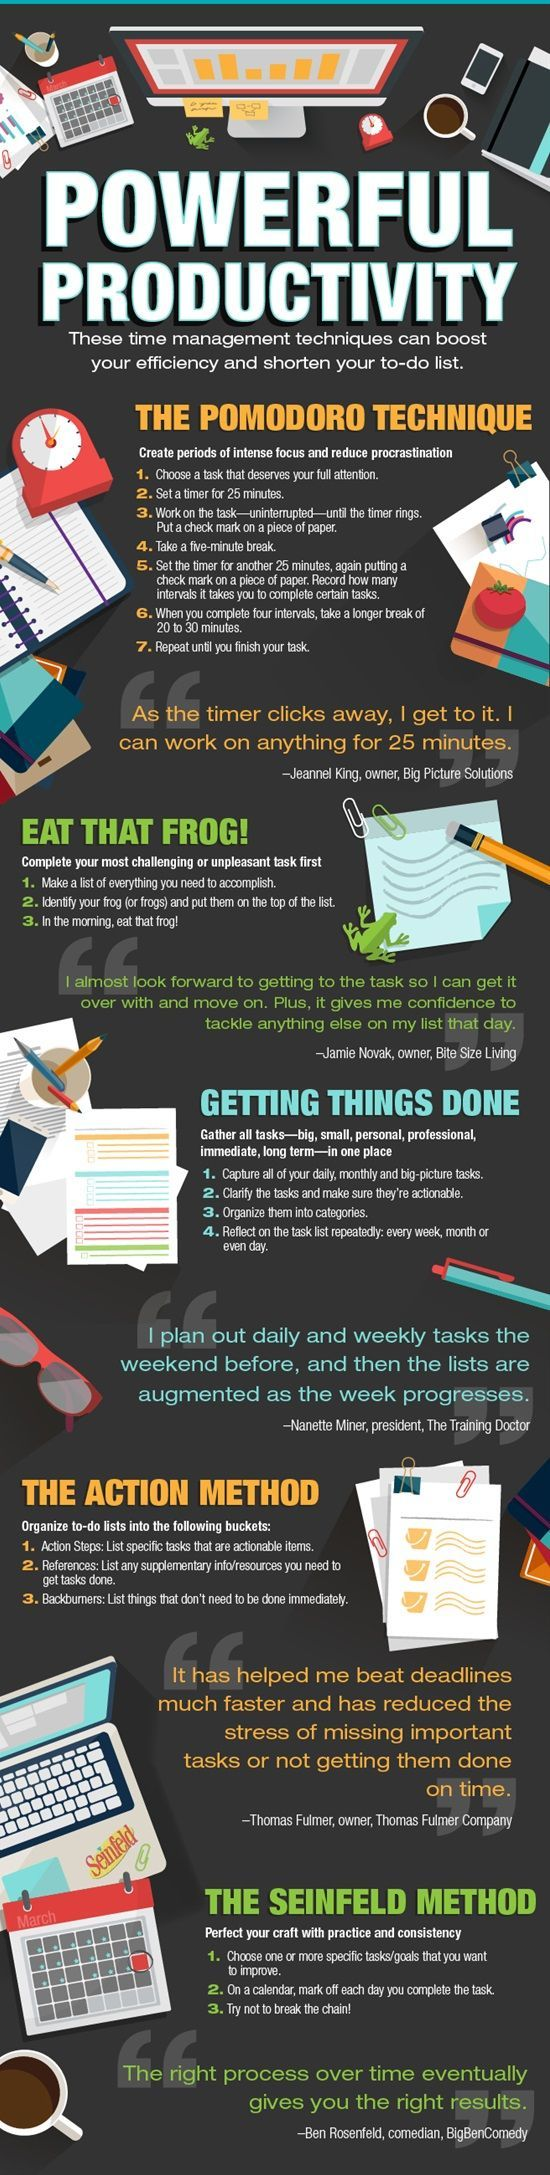 Top 10 Brain Foods that Help You Study and Get Better Grades